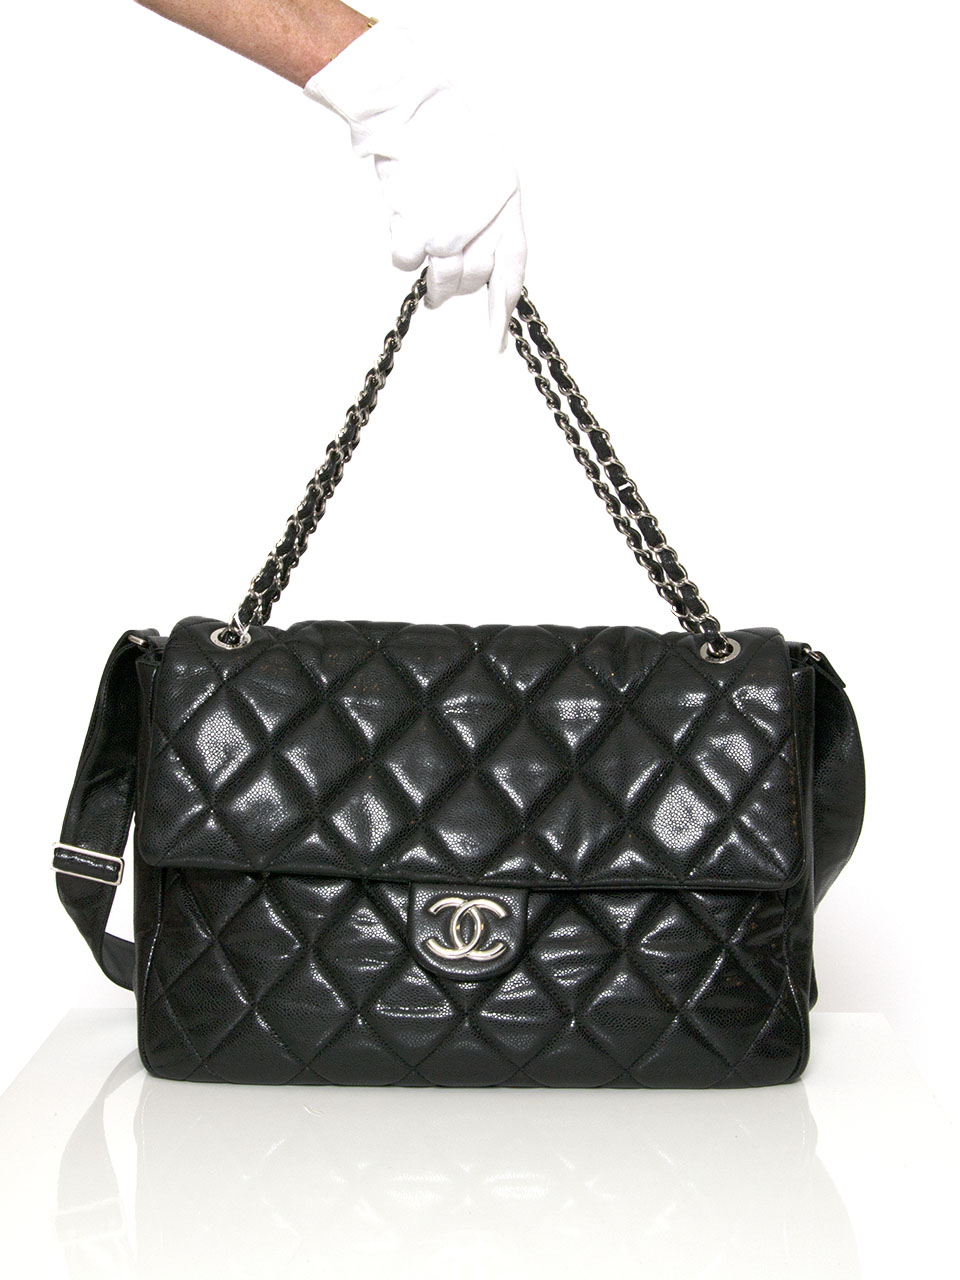 ca137b61ea63 ... LabelLOV authentieke tweedehands vintage Chanel handtas flap bag jumbo  2.55 tweedehands chanel caviar flap schouder tas in zwart kalfsleer